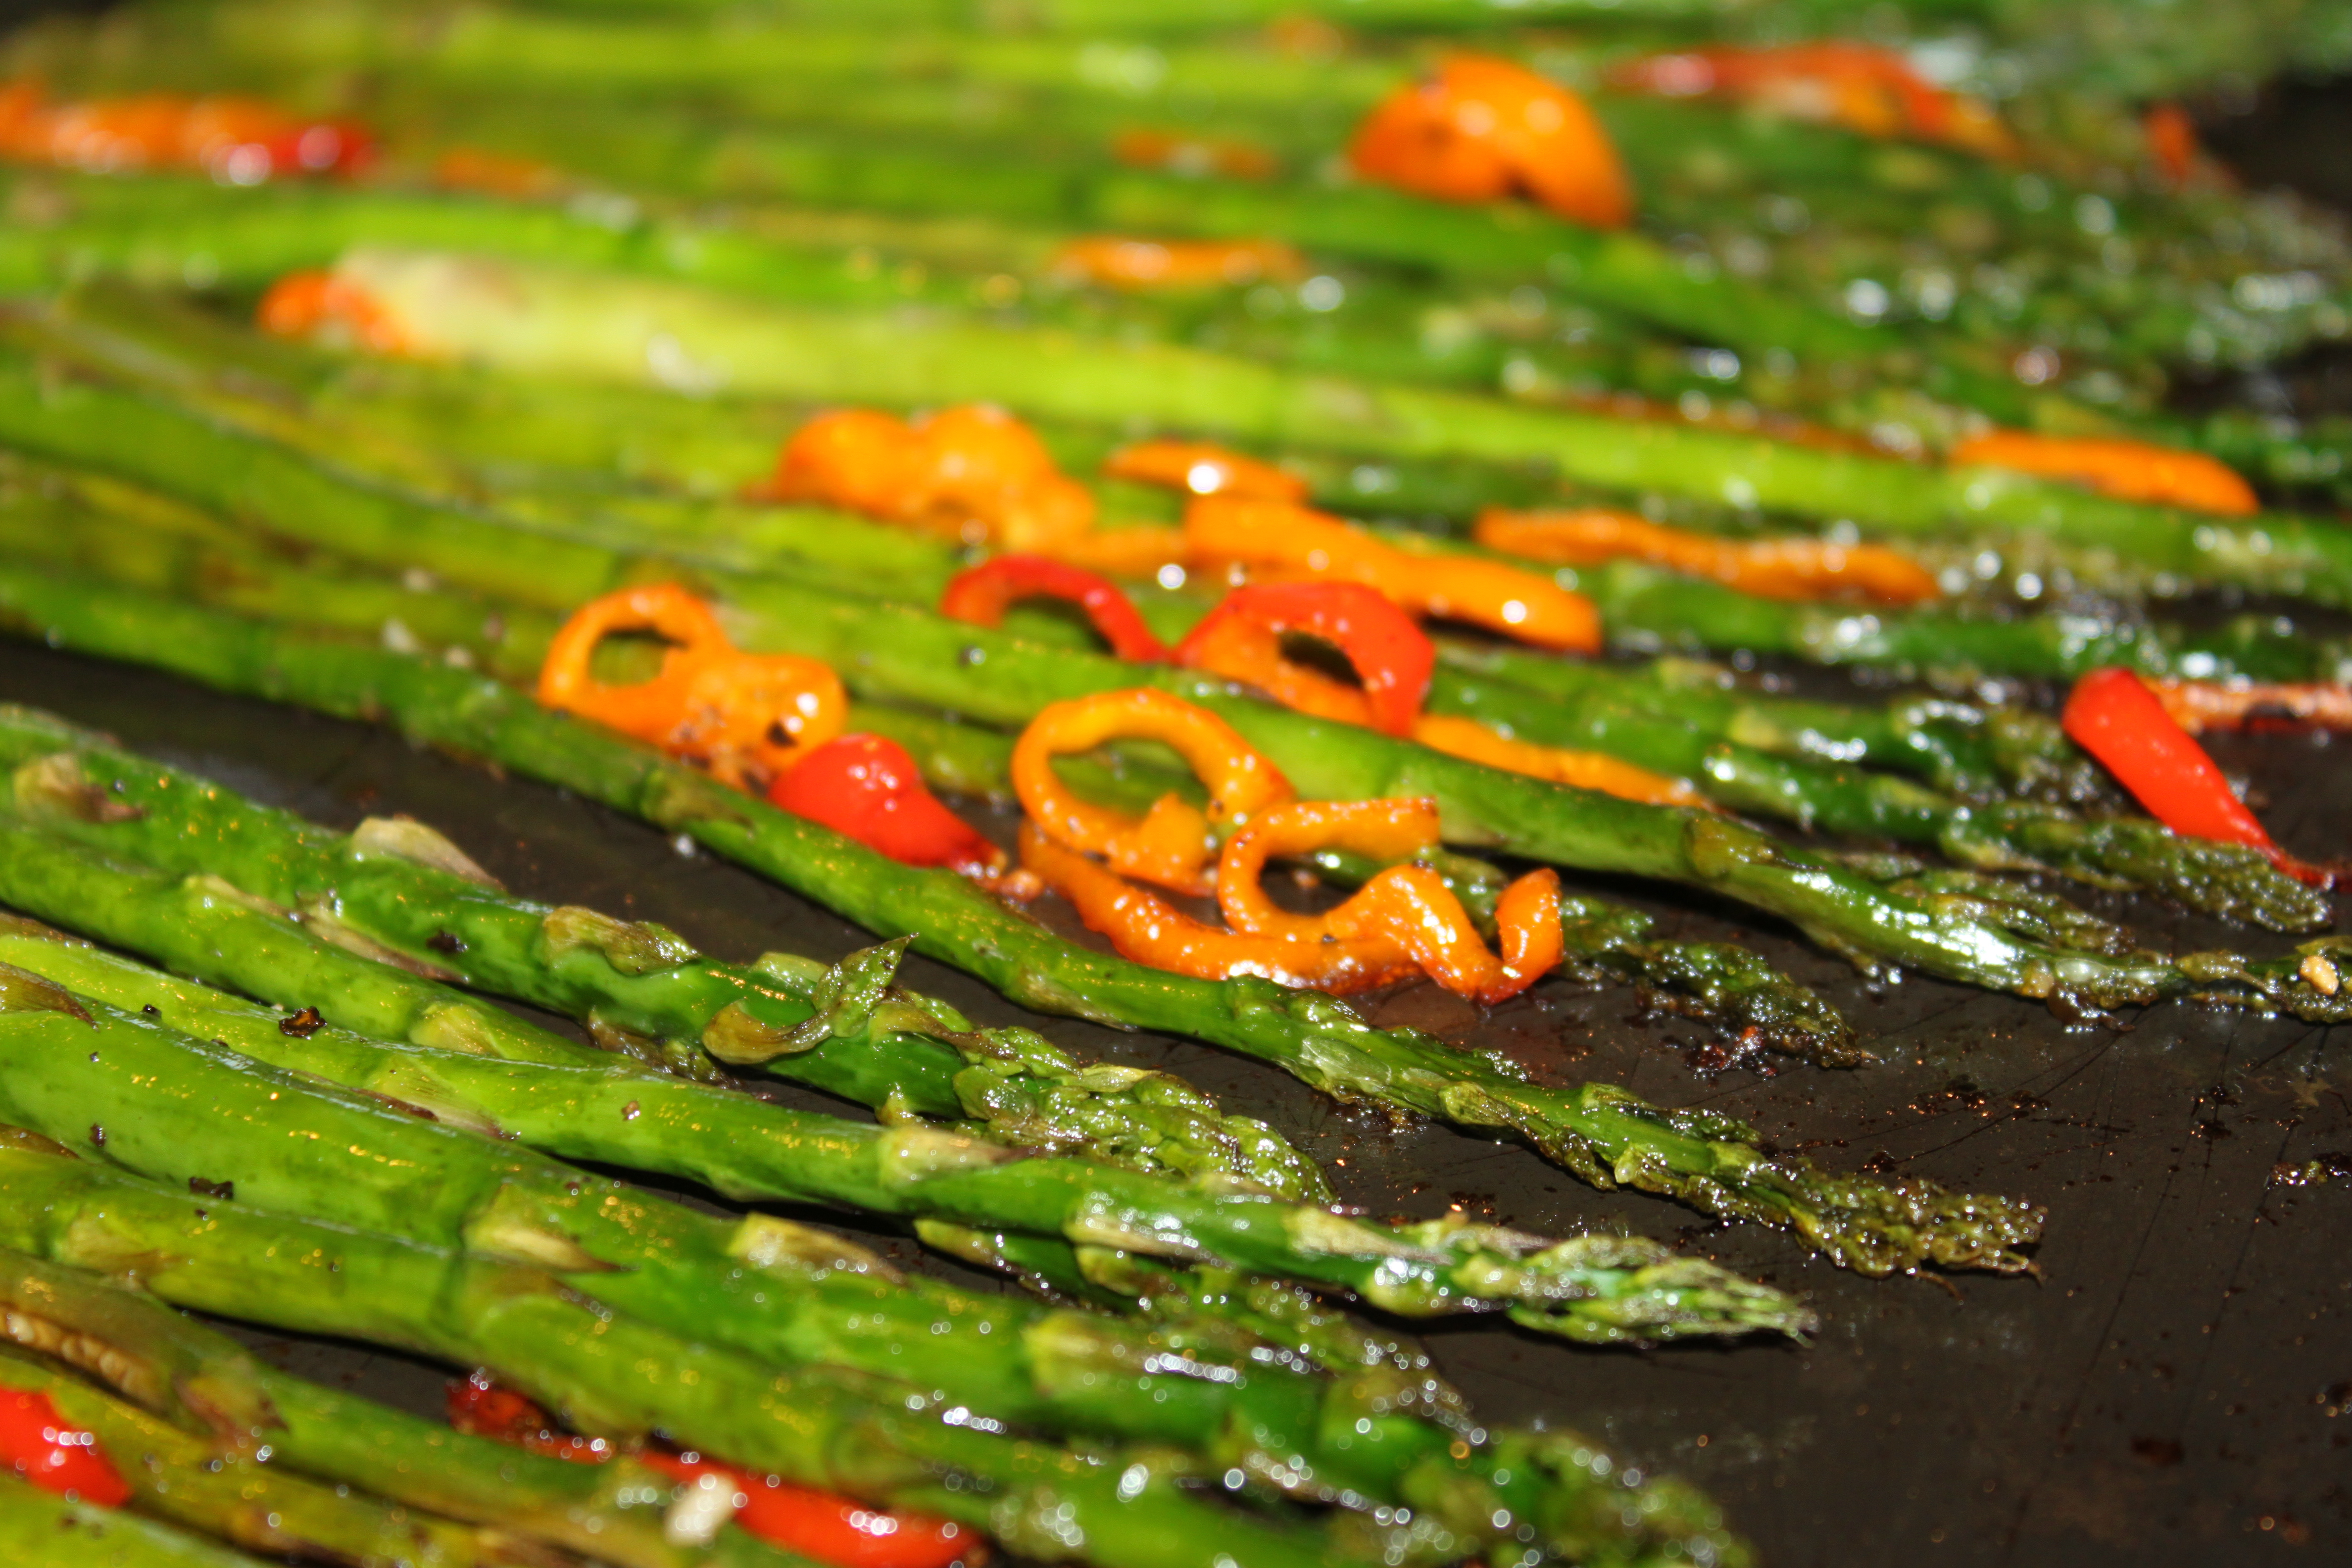 Roasted Asparagus In The Oven Is One Of The Easiest Ways To Prepare  Asparagus Just Coat Them With A Little Olive Oil, Sprinkle With Salt And  Pepper,